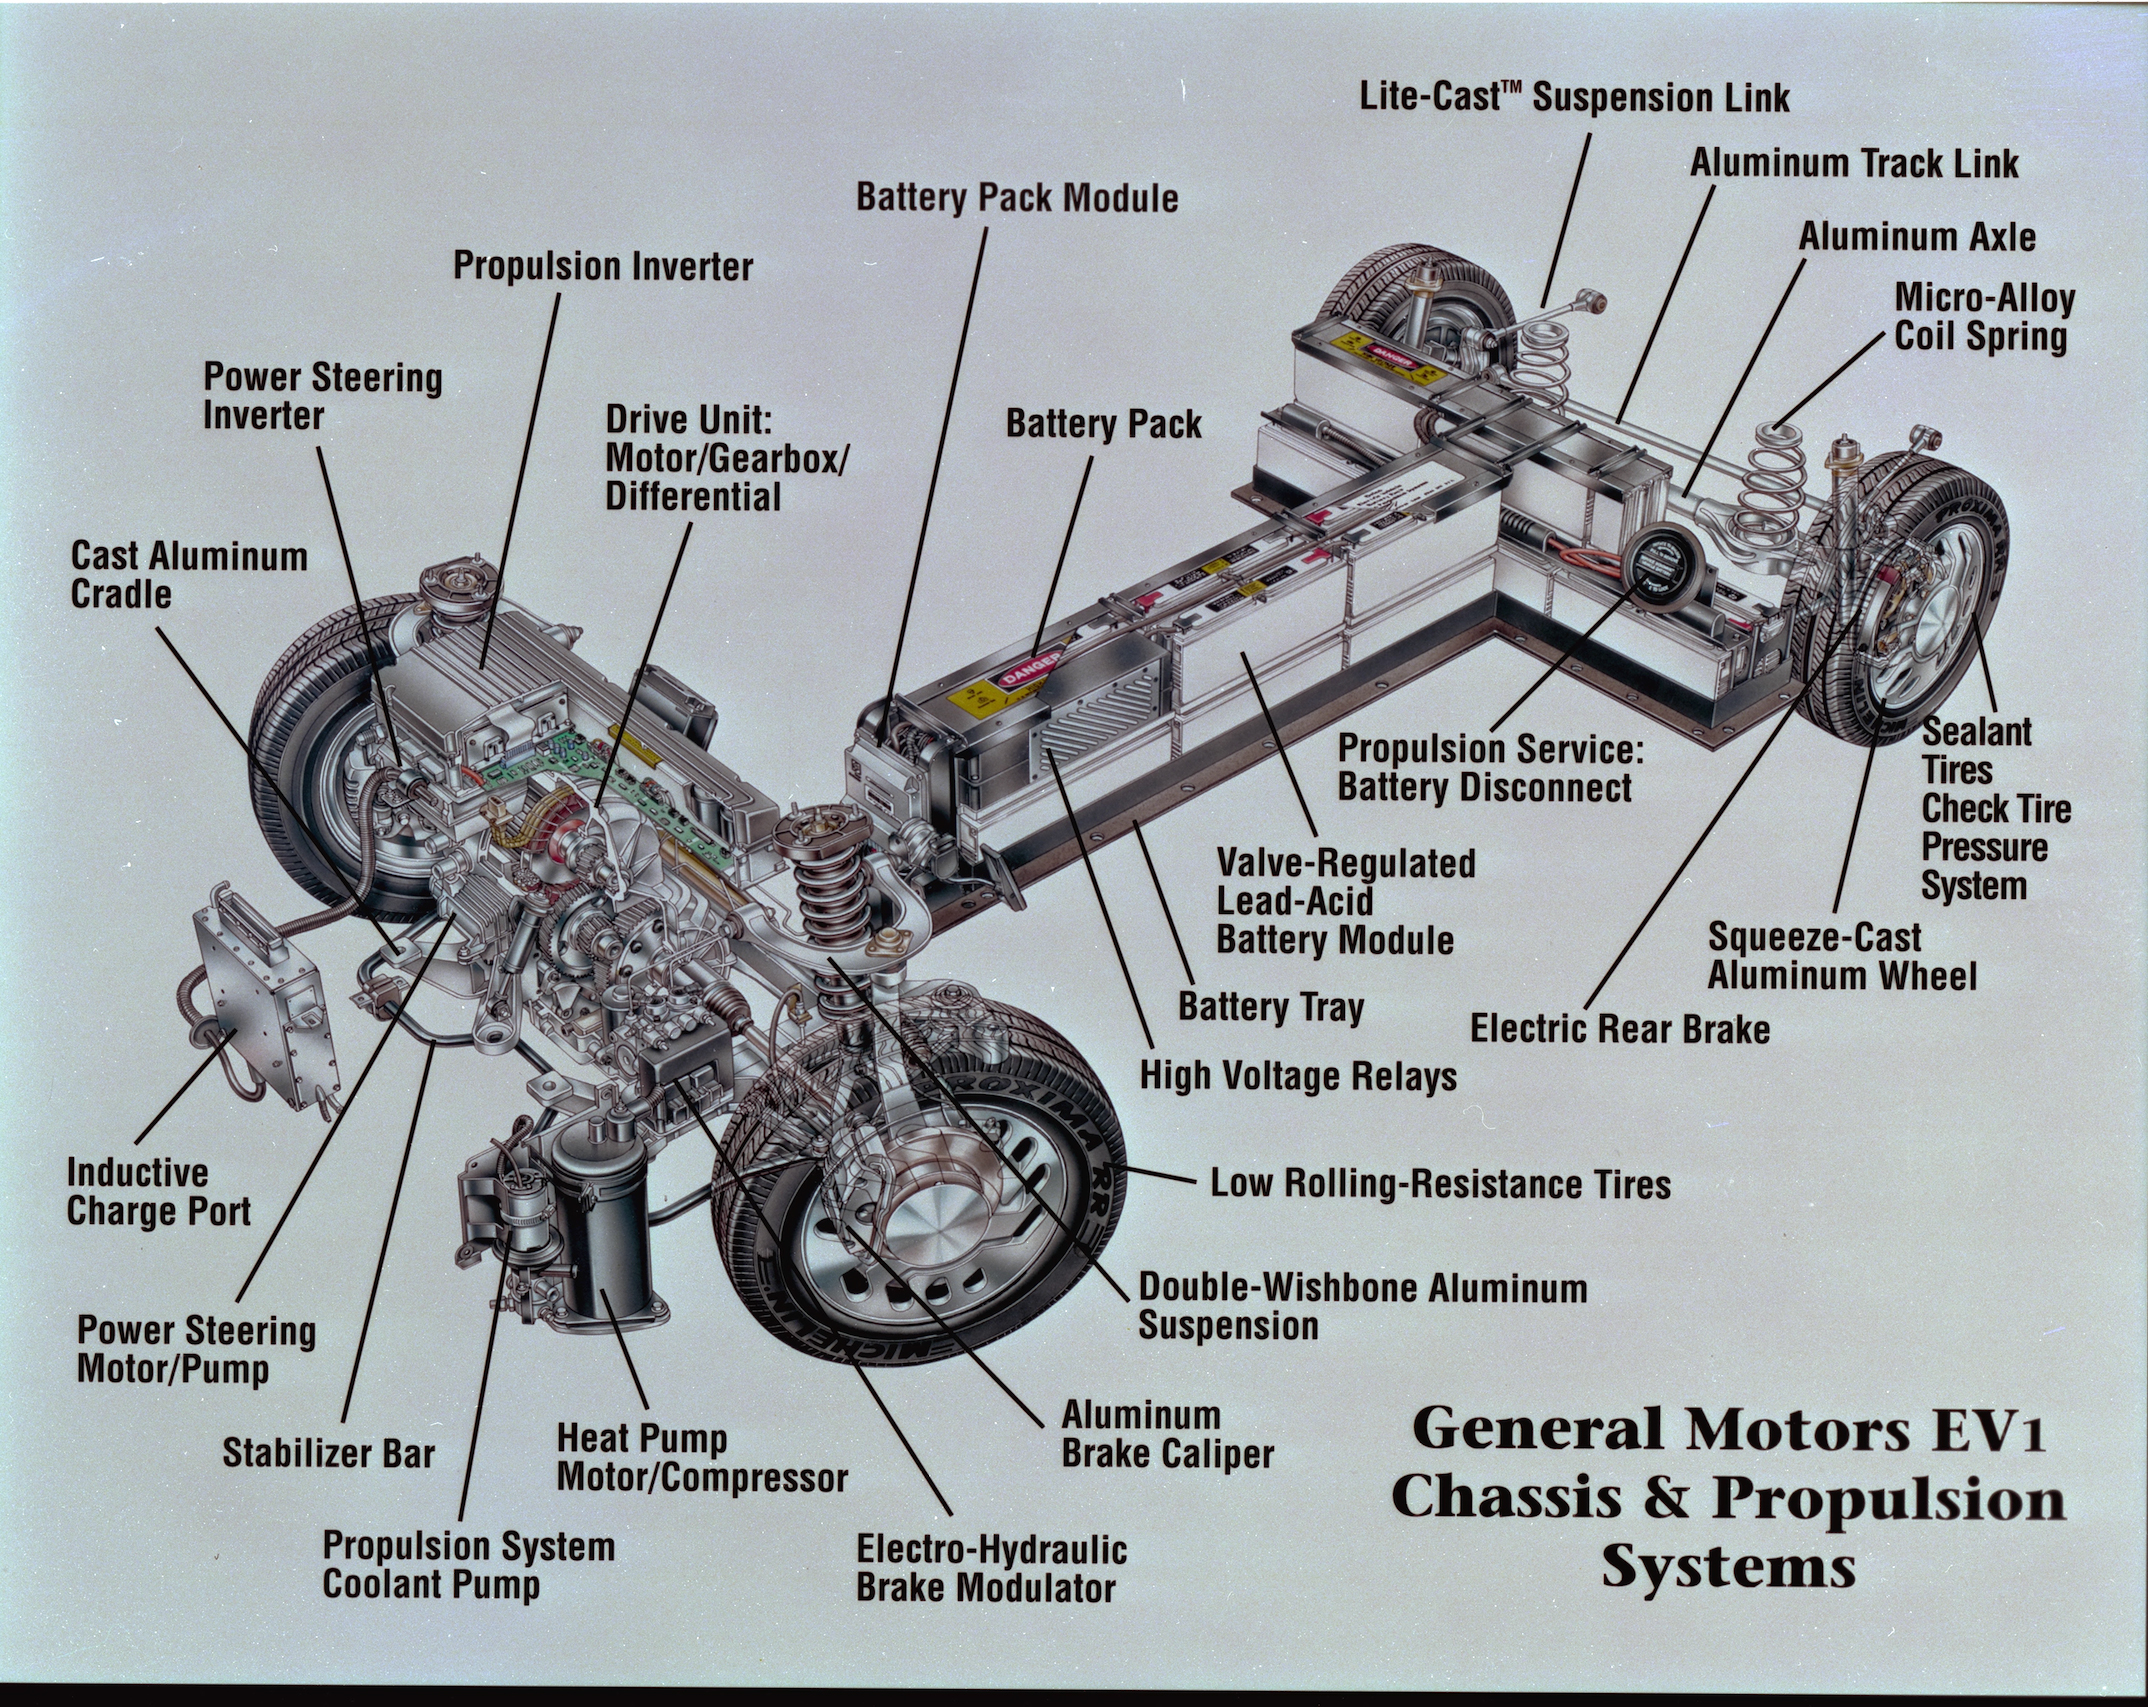 EV1 chassis propulsion system schematic